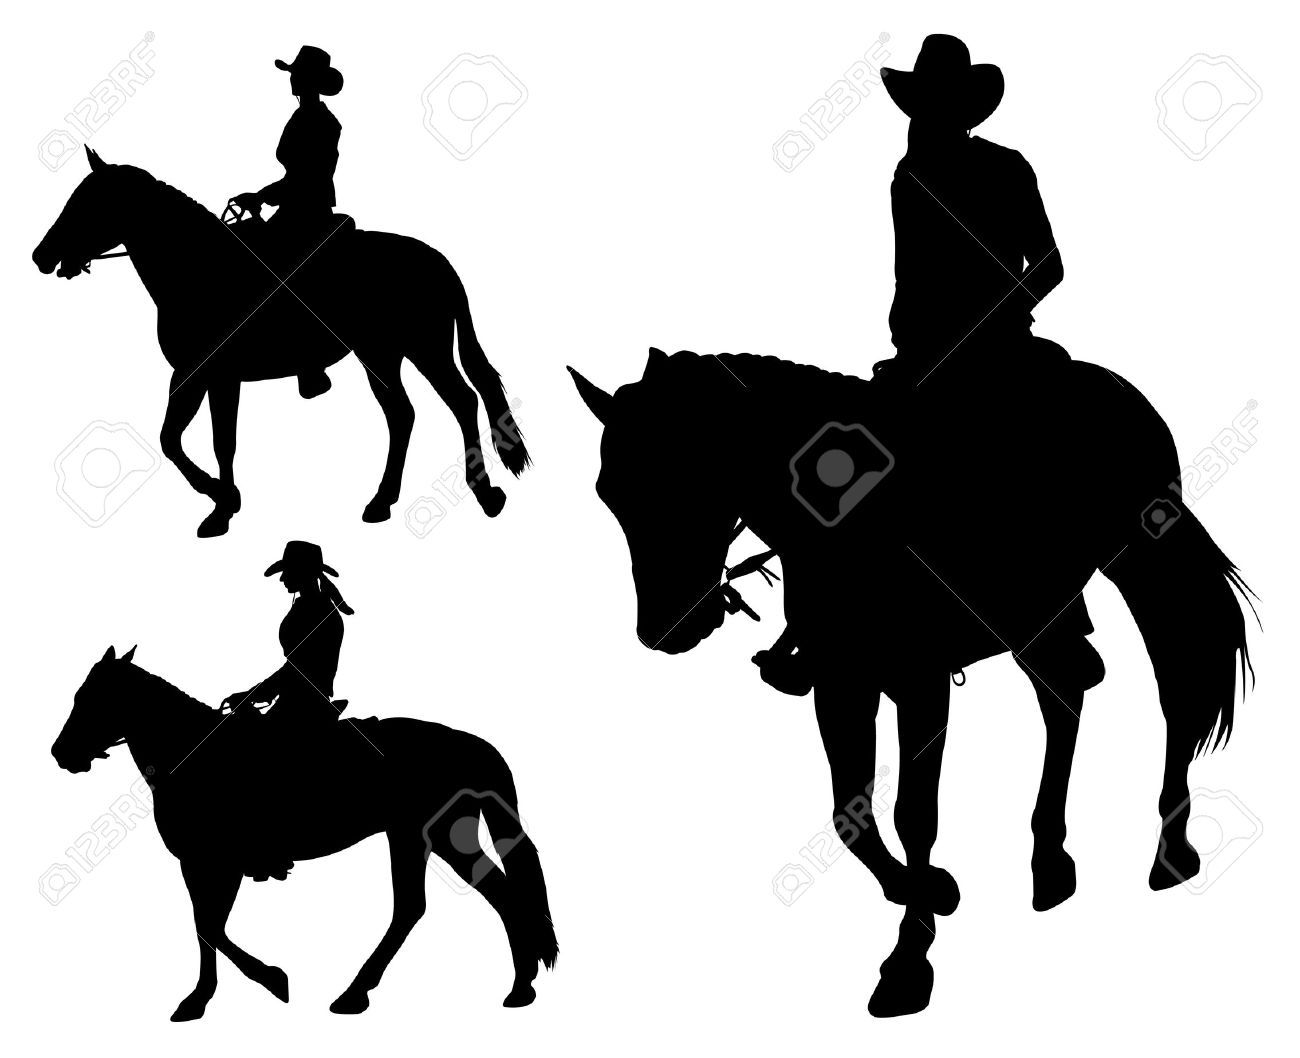 Cowgirl Riding Horse Silhouettes Royalty Free Cliparts Vectors